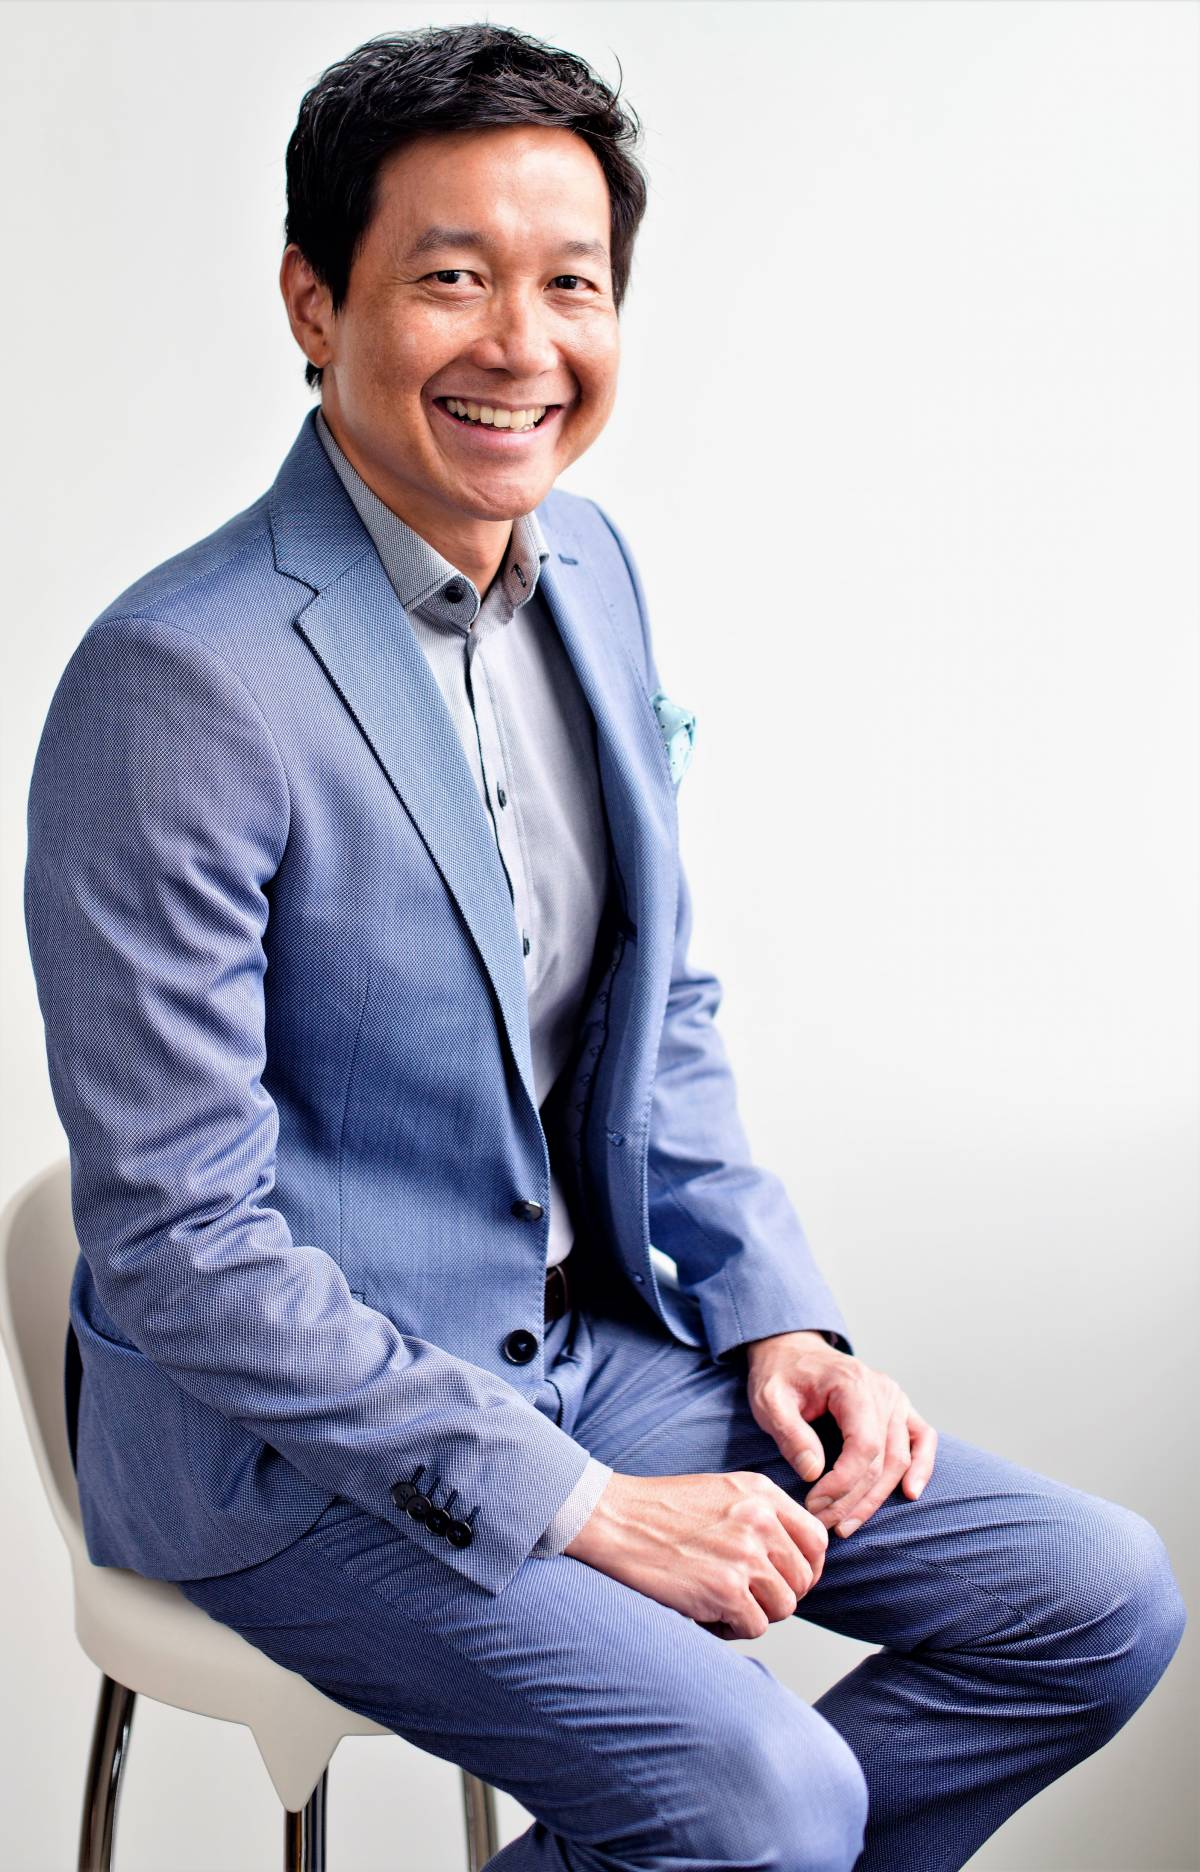 Club Med Appoints Vincent Ong as Senior Vice-President, Commercial Southeast Asia and Marketing Asia Pacific